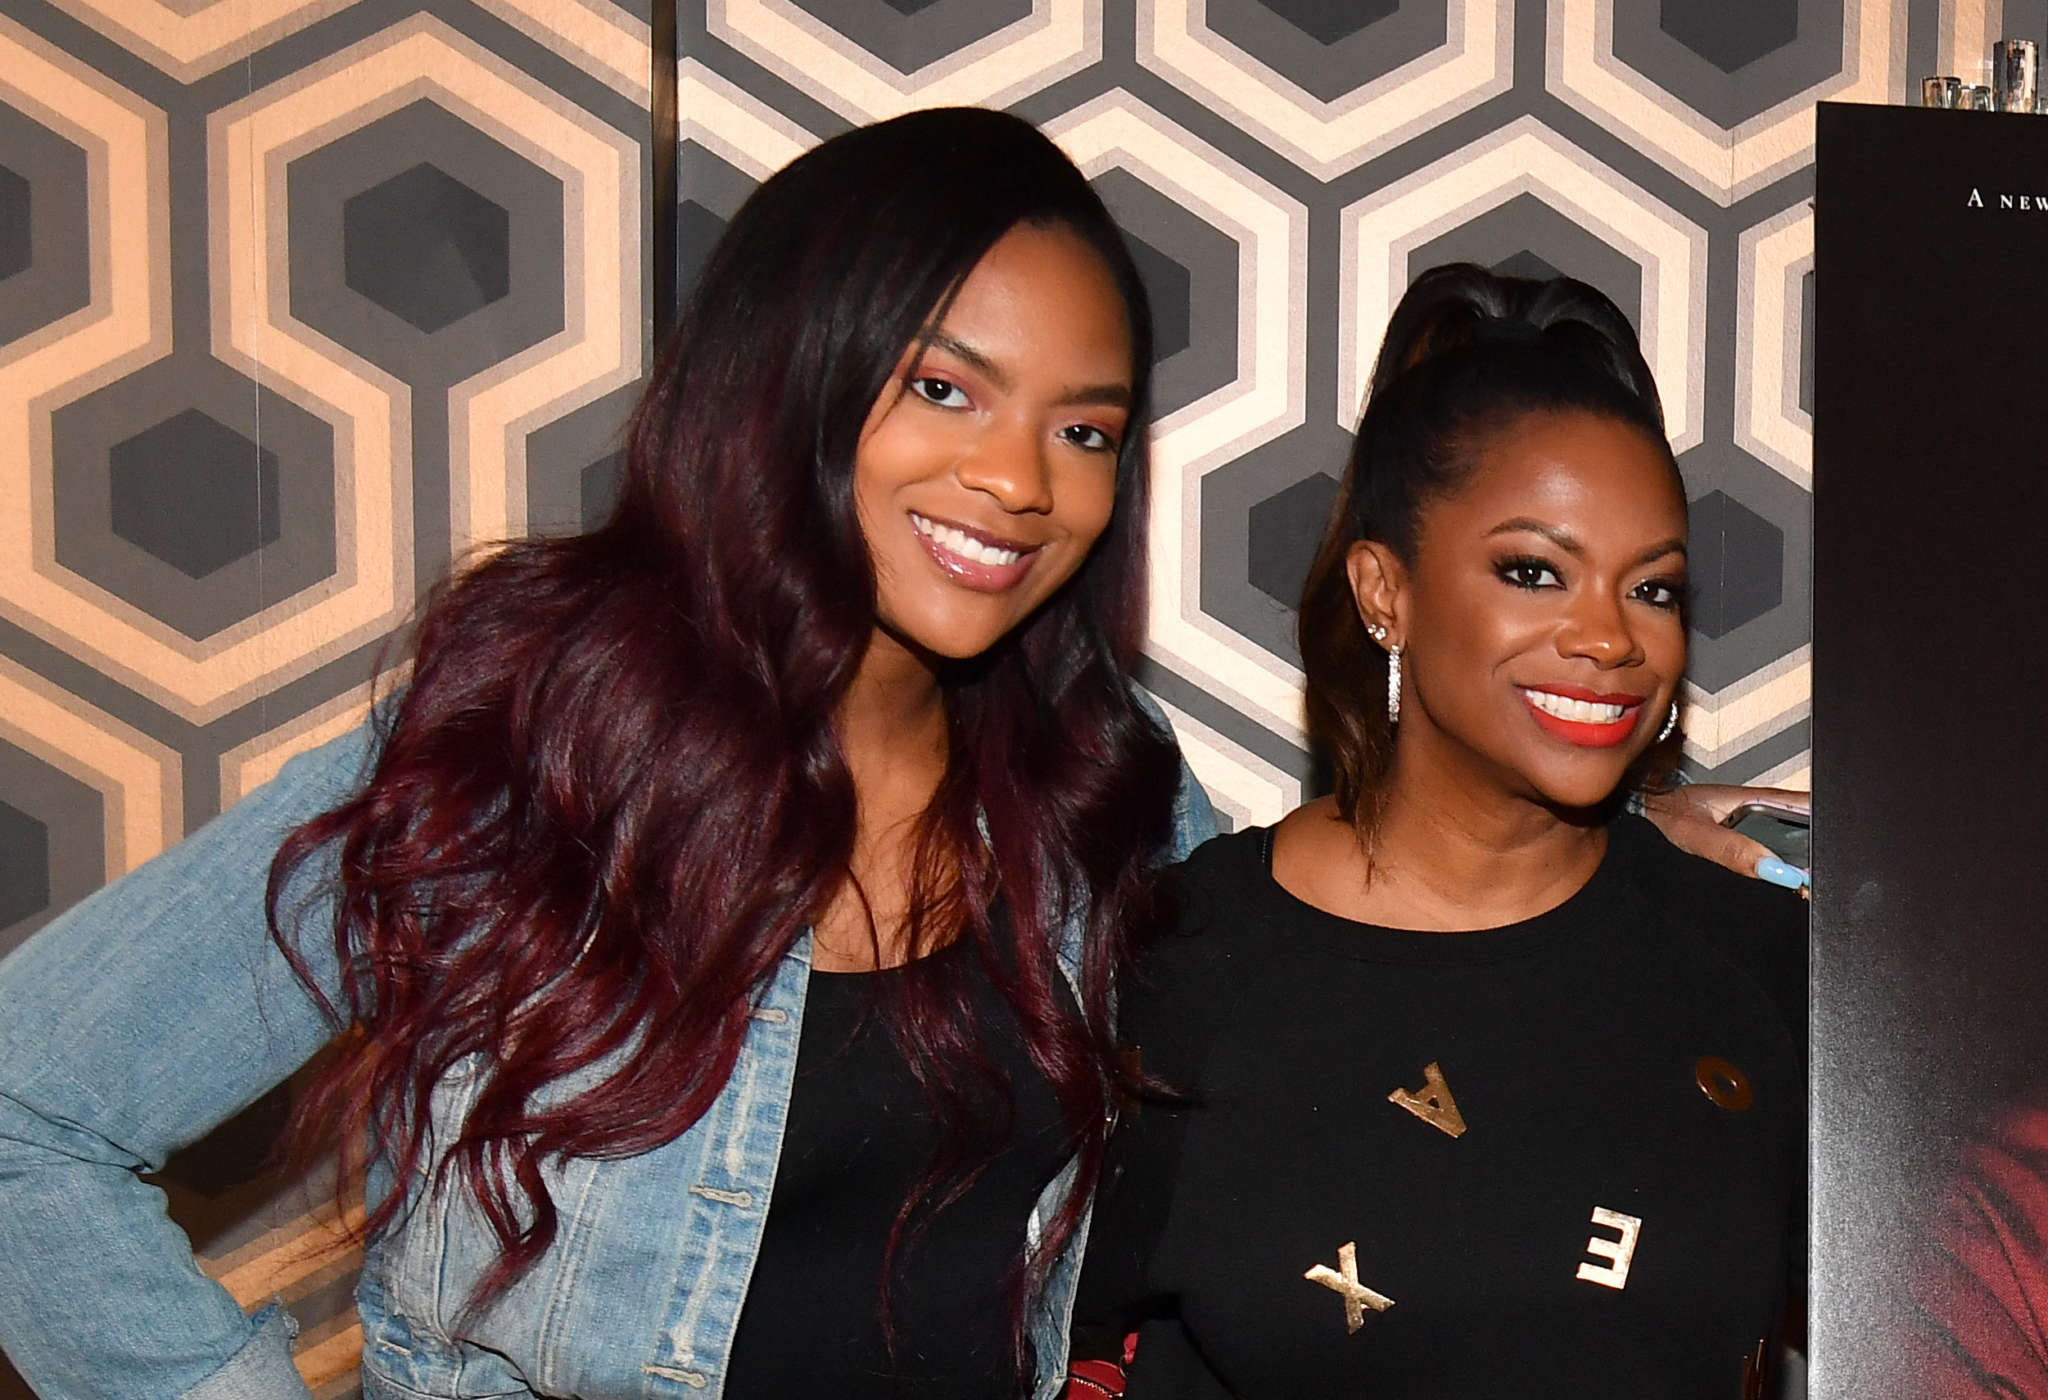 Kandi Burruss And Riley Are Showing Off Some Jaw-Dropping Geisha Makeovers From Kyoto - They Look Amazing